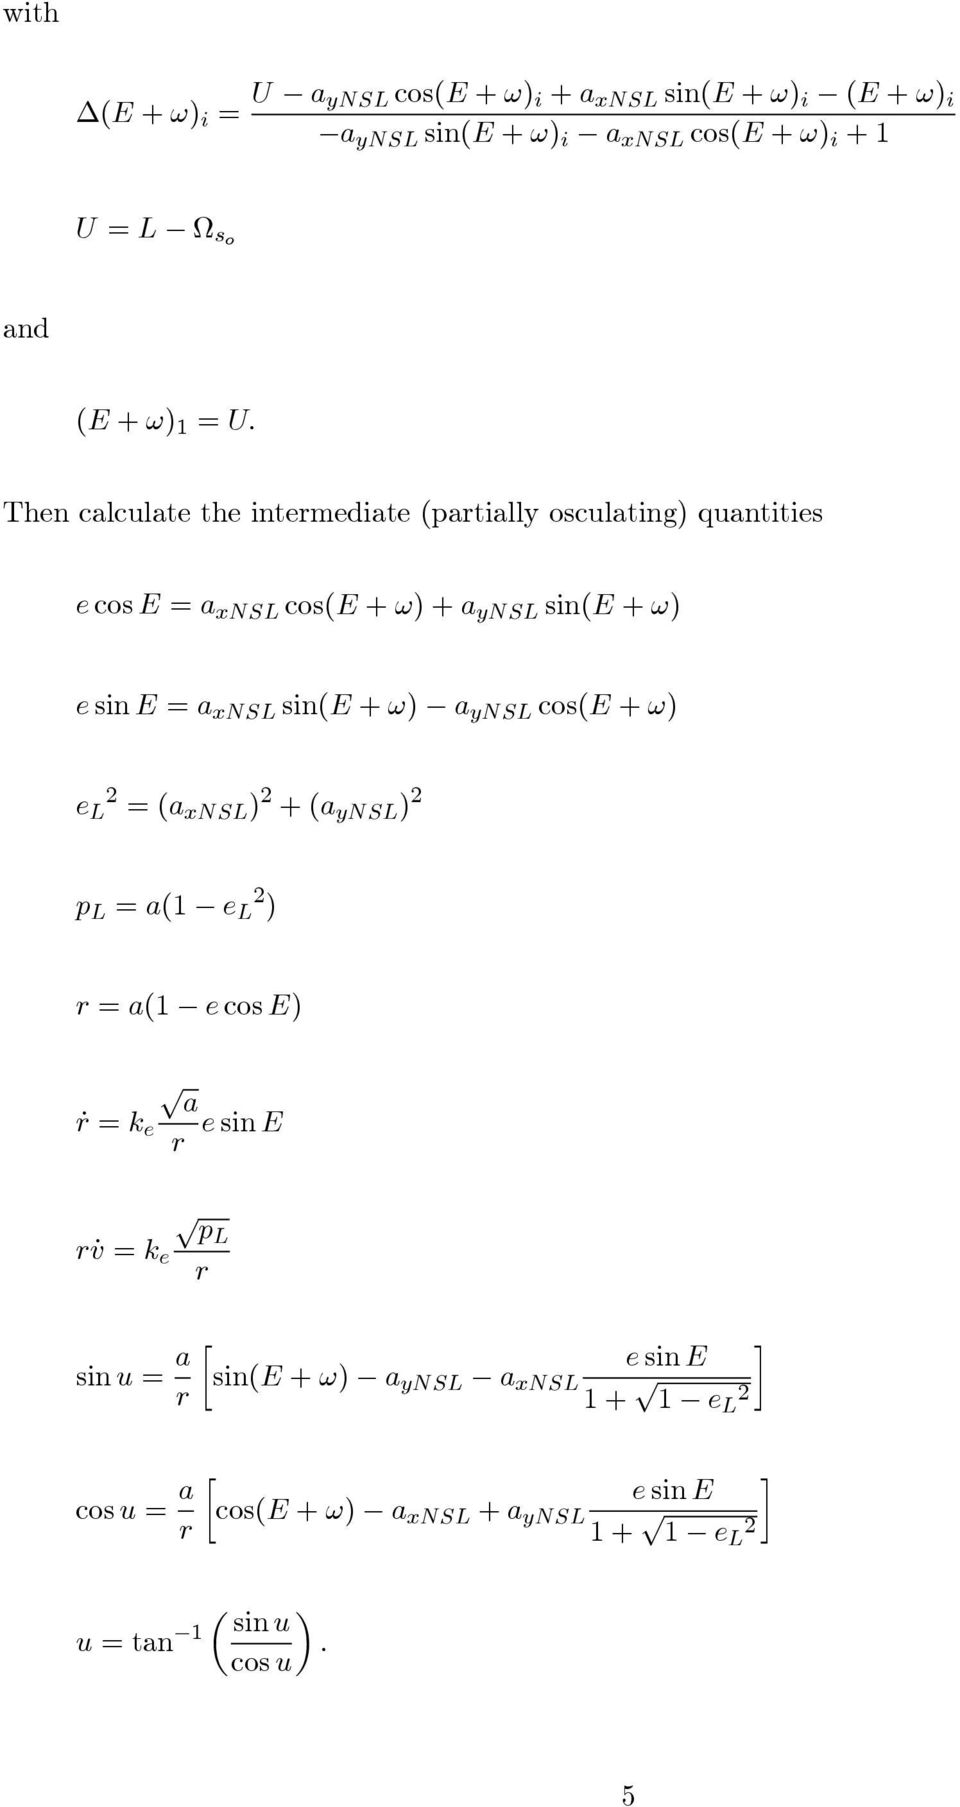 Then calculate the intermediate (partially osculating) quantities e cos E = a xnsl cos(e + ω)+a ynsl sin(e + ω) e sin E = a xnsl sin(e